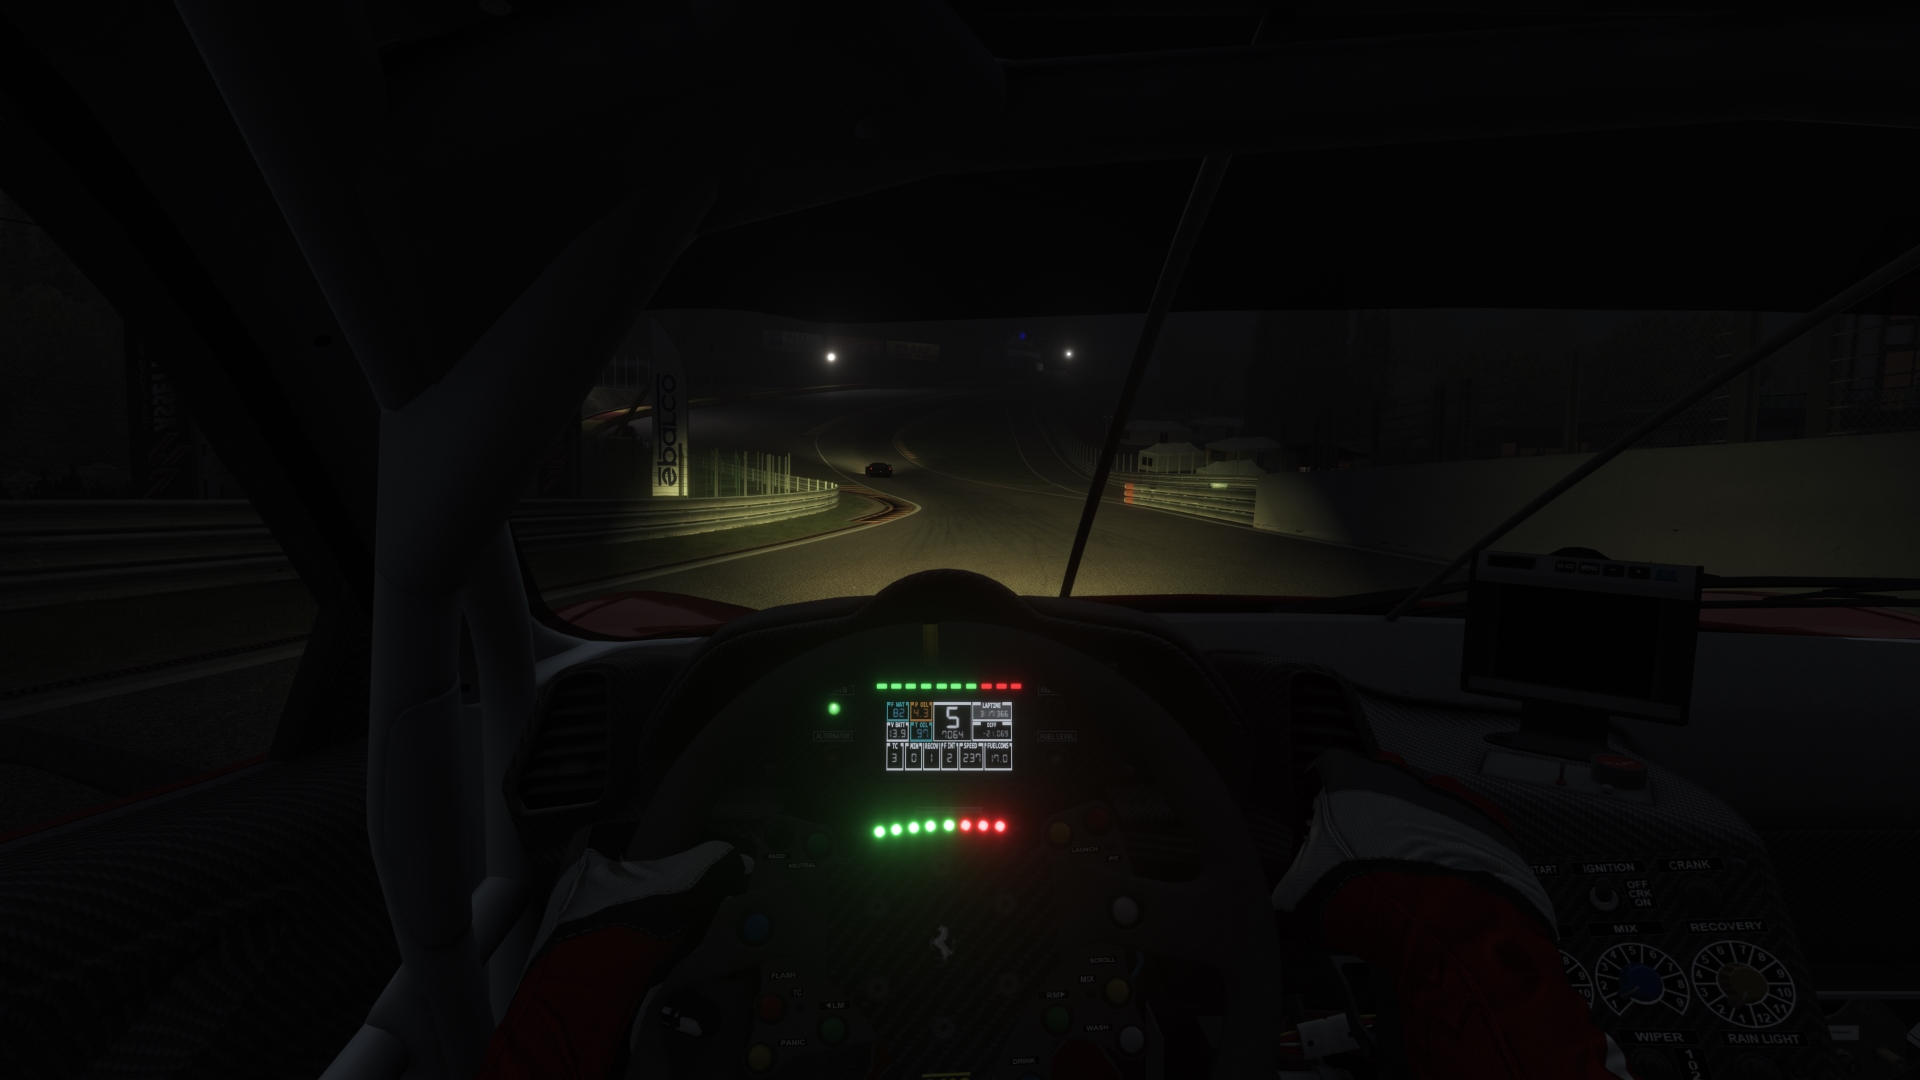 Screenshot_ferrari_458_gt2_spa_10-11-118-23-12-13.jpg